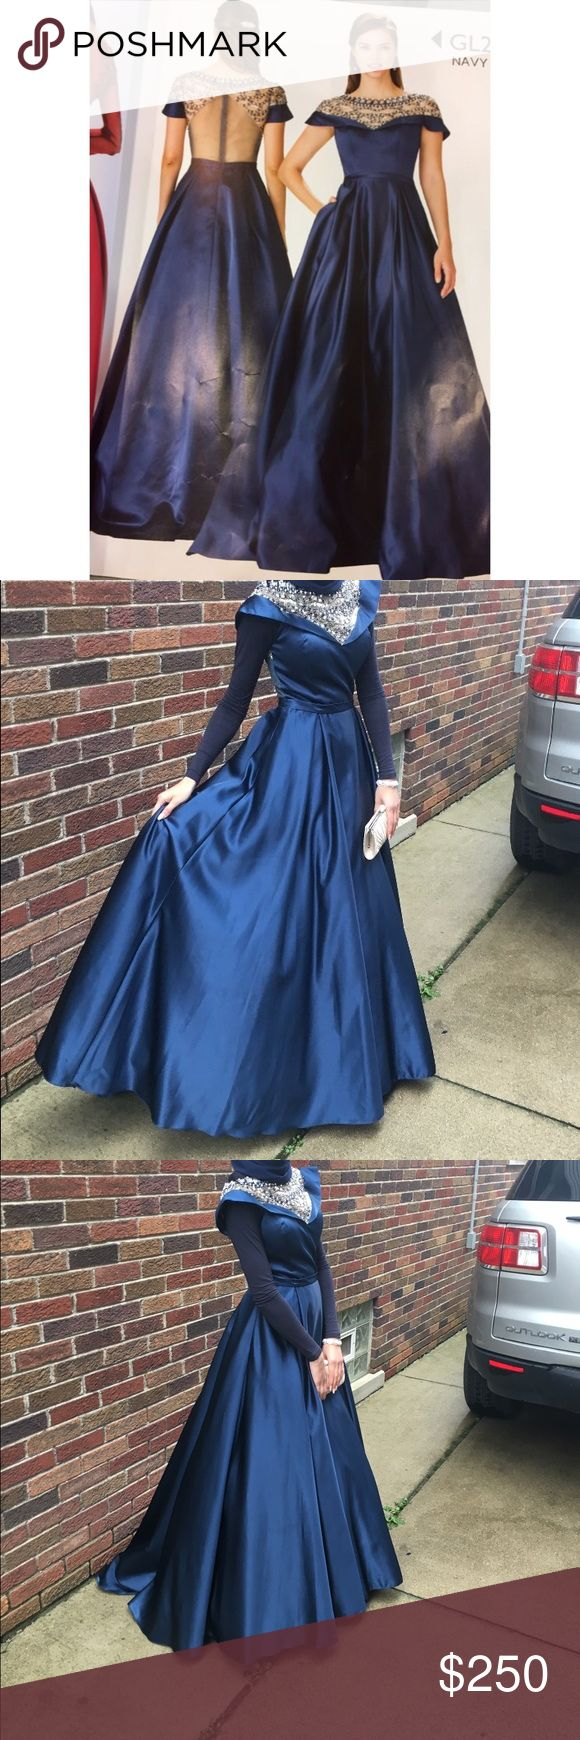 Navy blue ball gown prom dress, detailed from top WORN ONCE, CONDITION NEW Dresses Prom